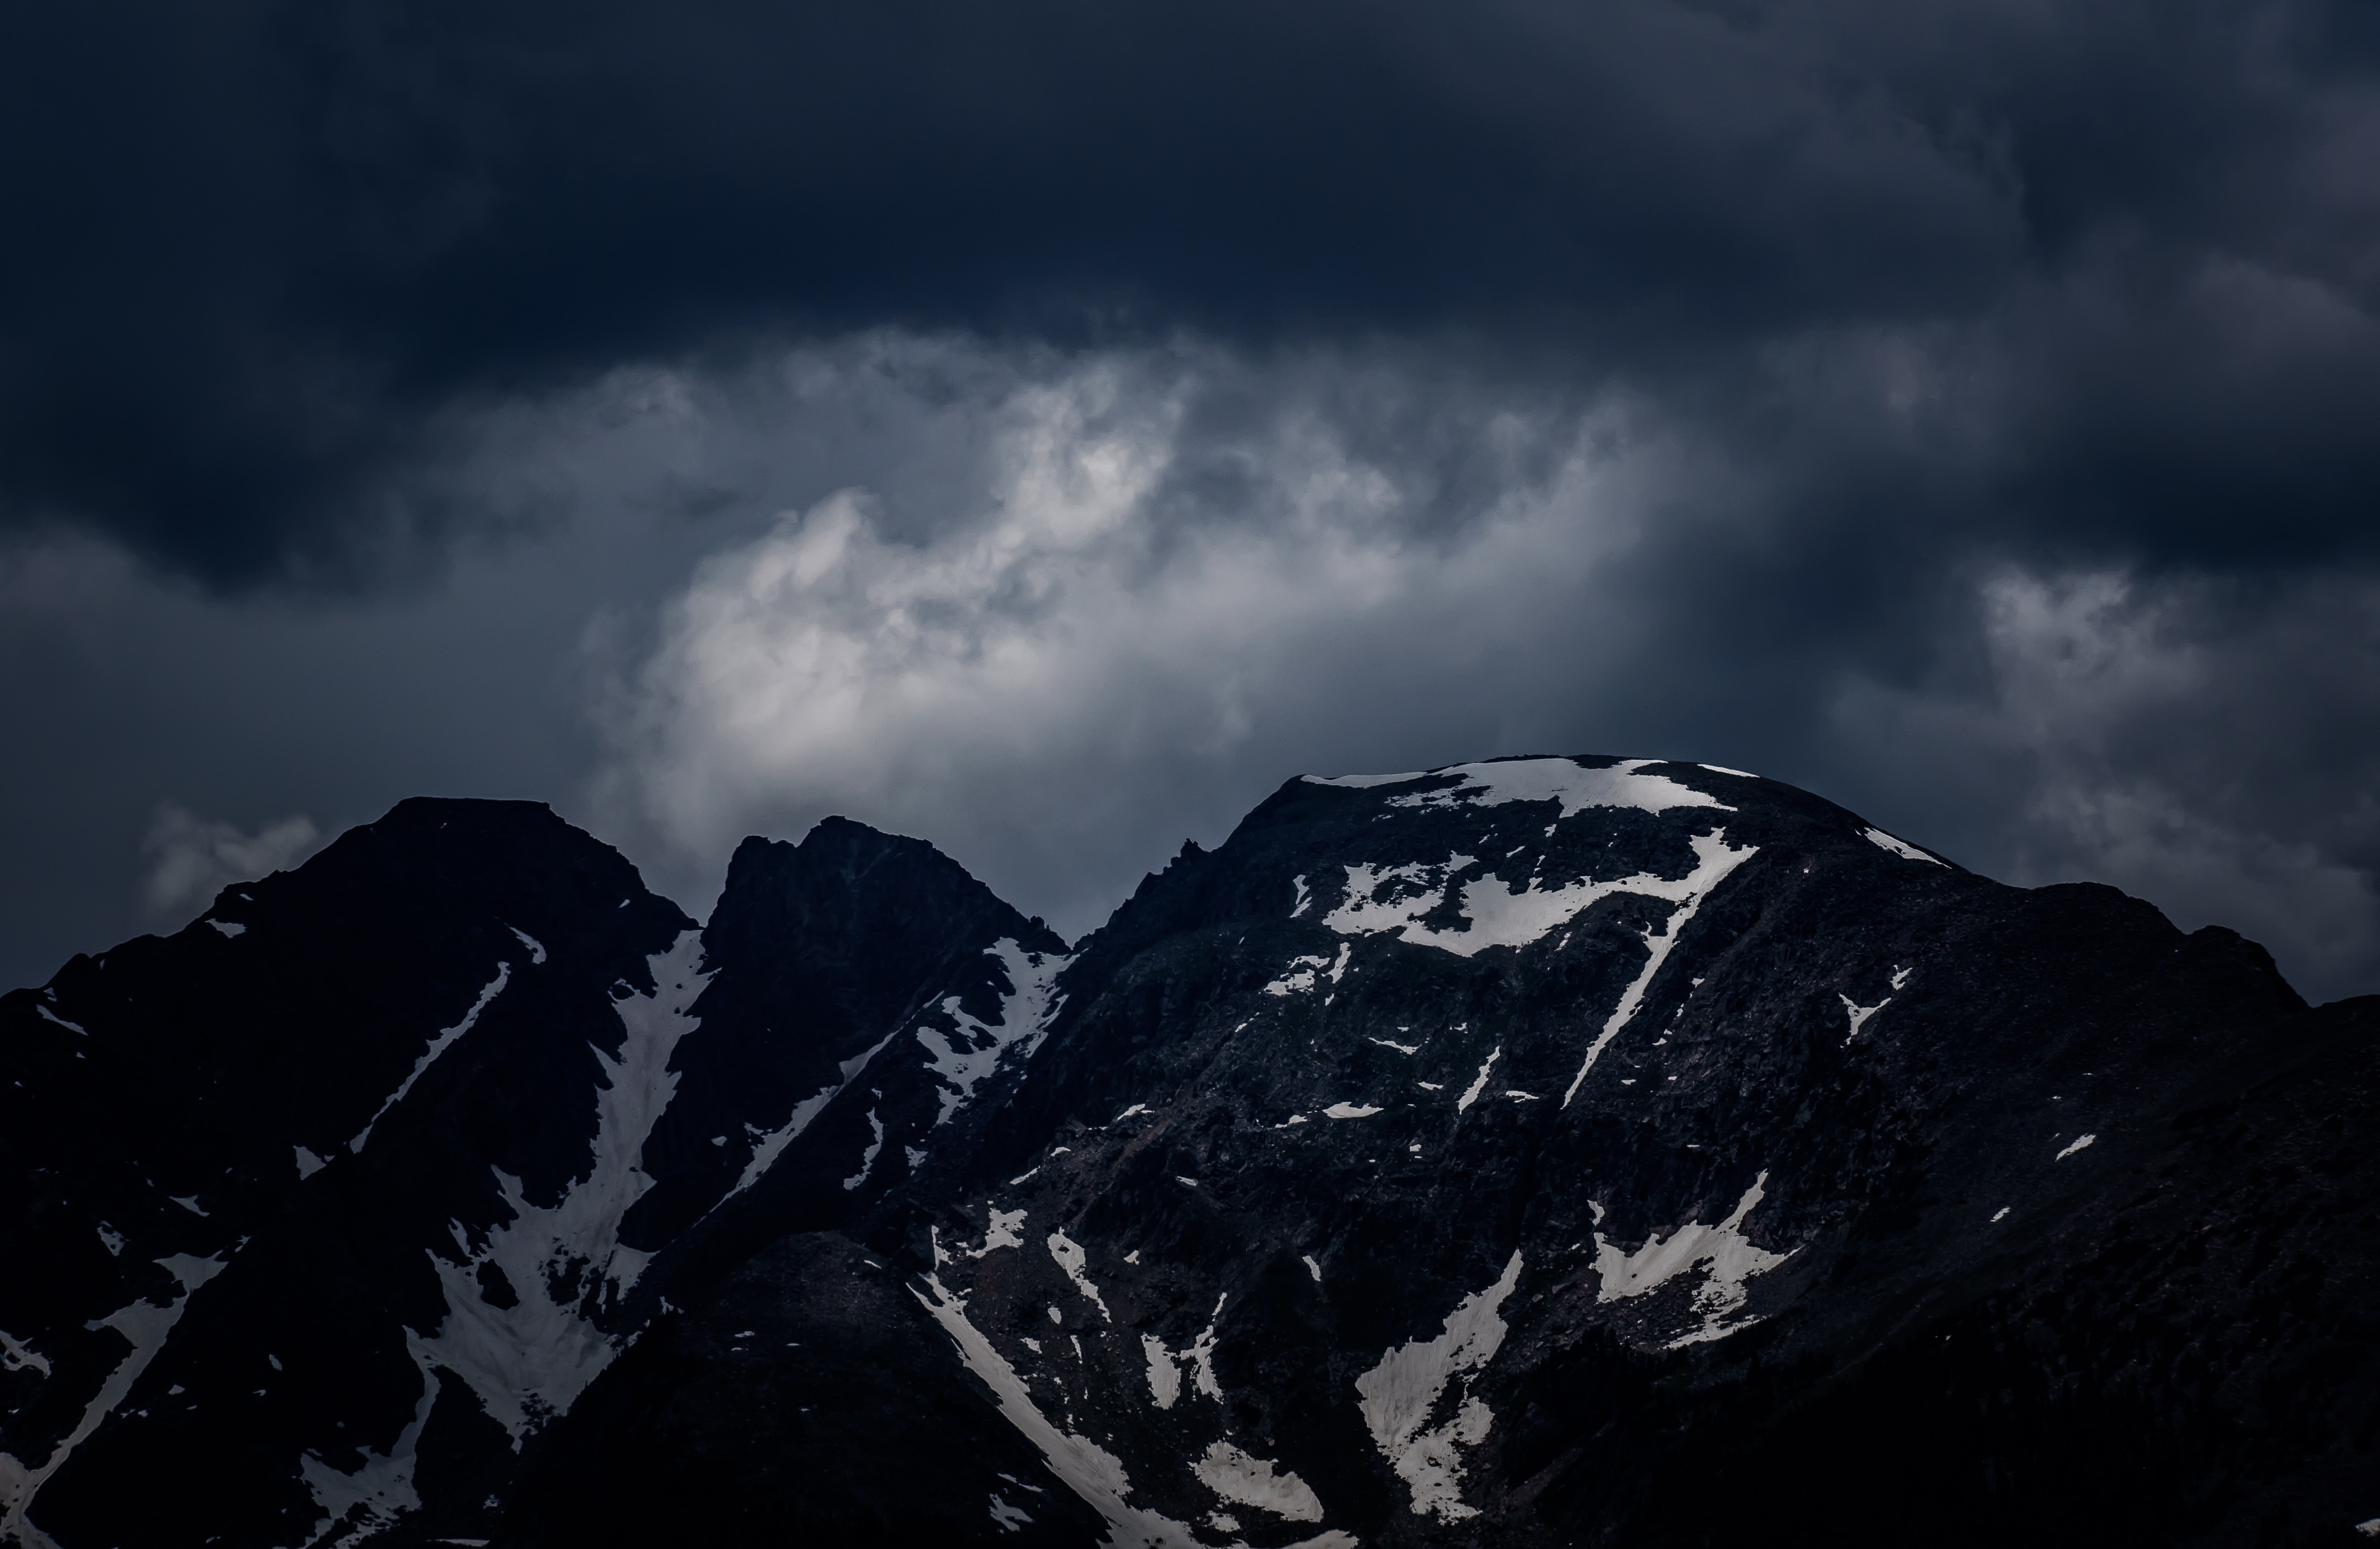 Dark storm clouds roll in over snowy mountains in Silverthorne